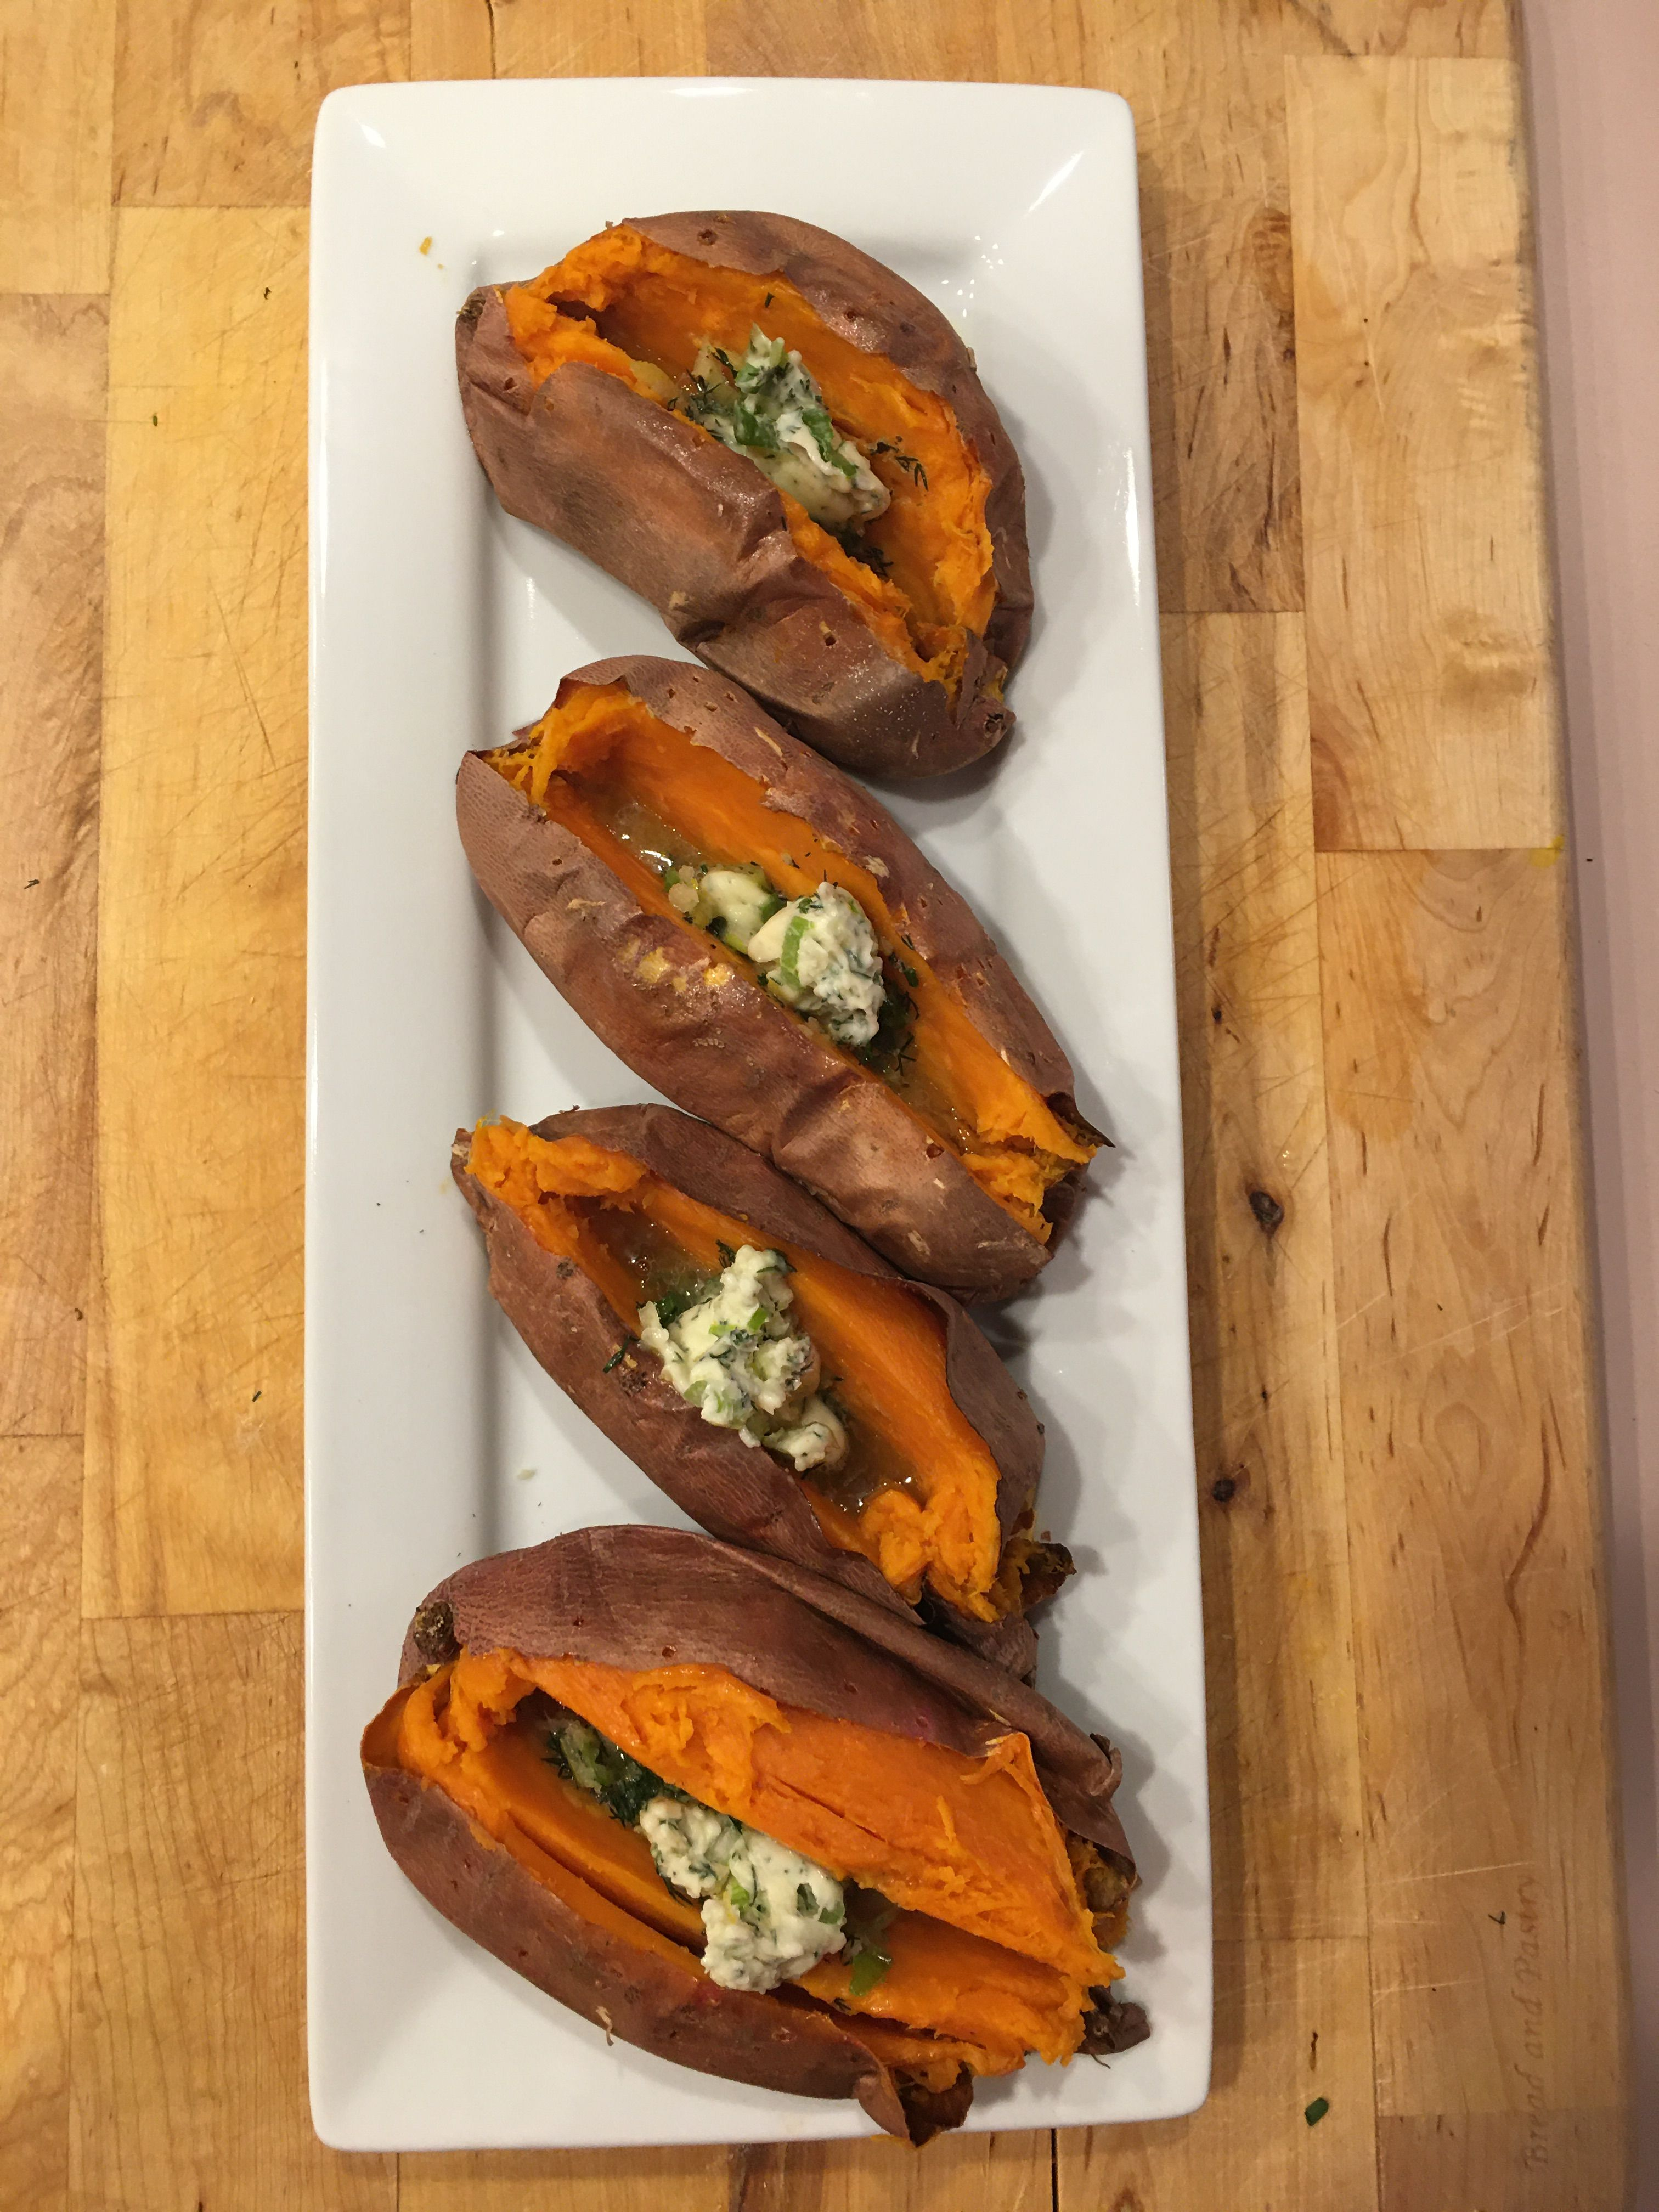 Baked Sweet Potatoes With Dill Butter Sweet Potato Plant Based Whole Foods Recipes